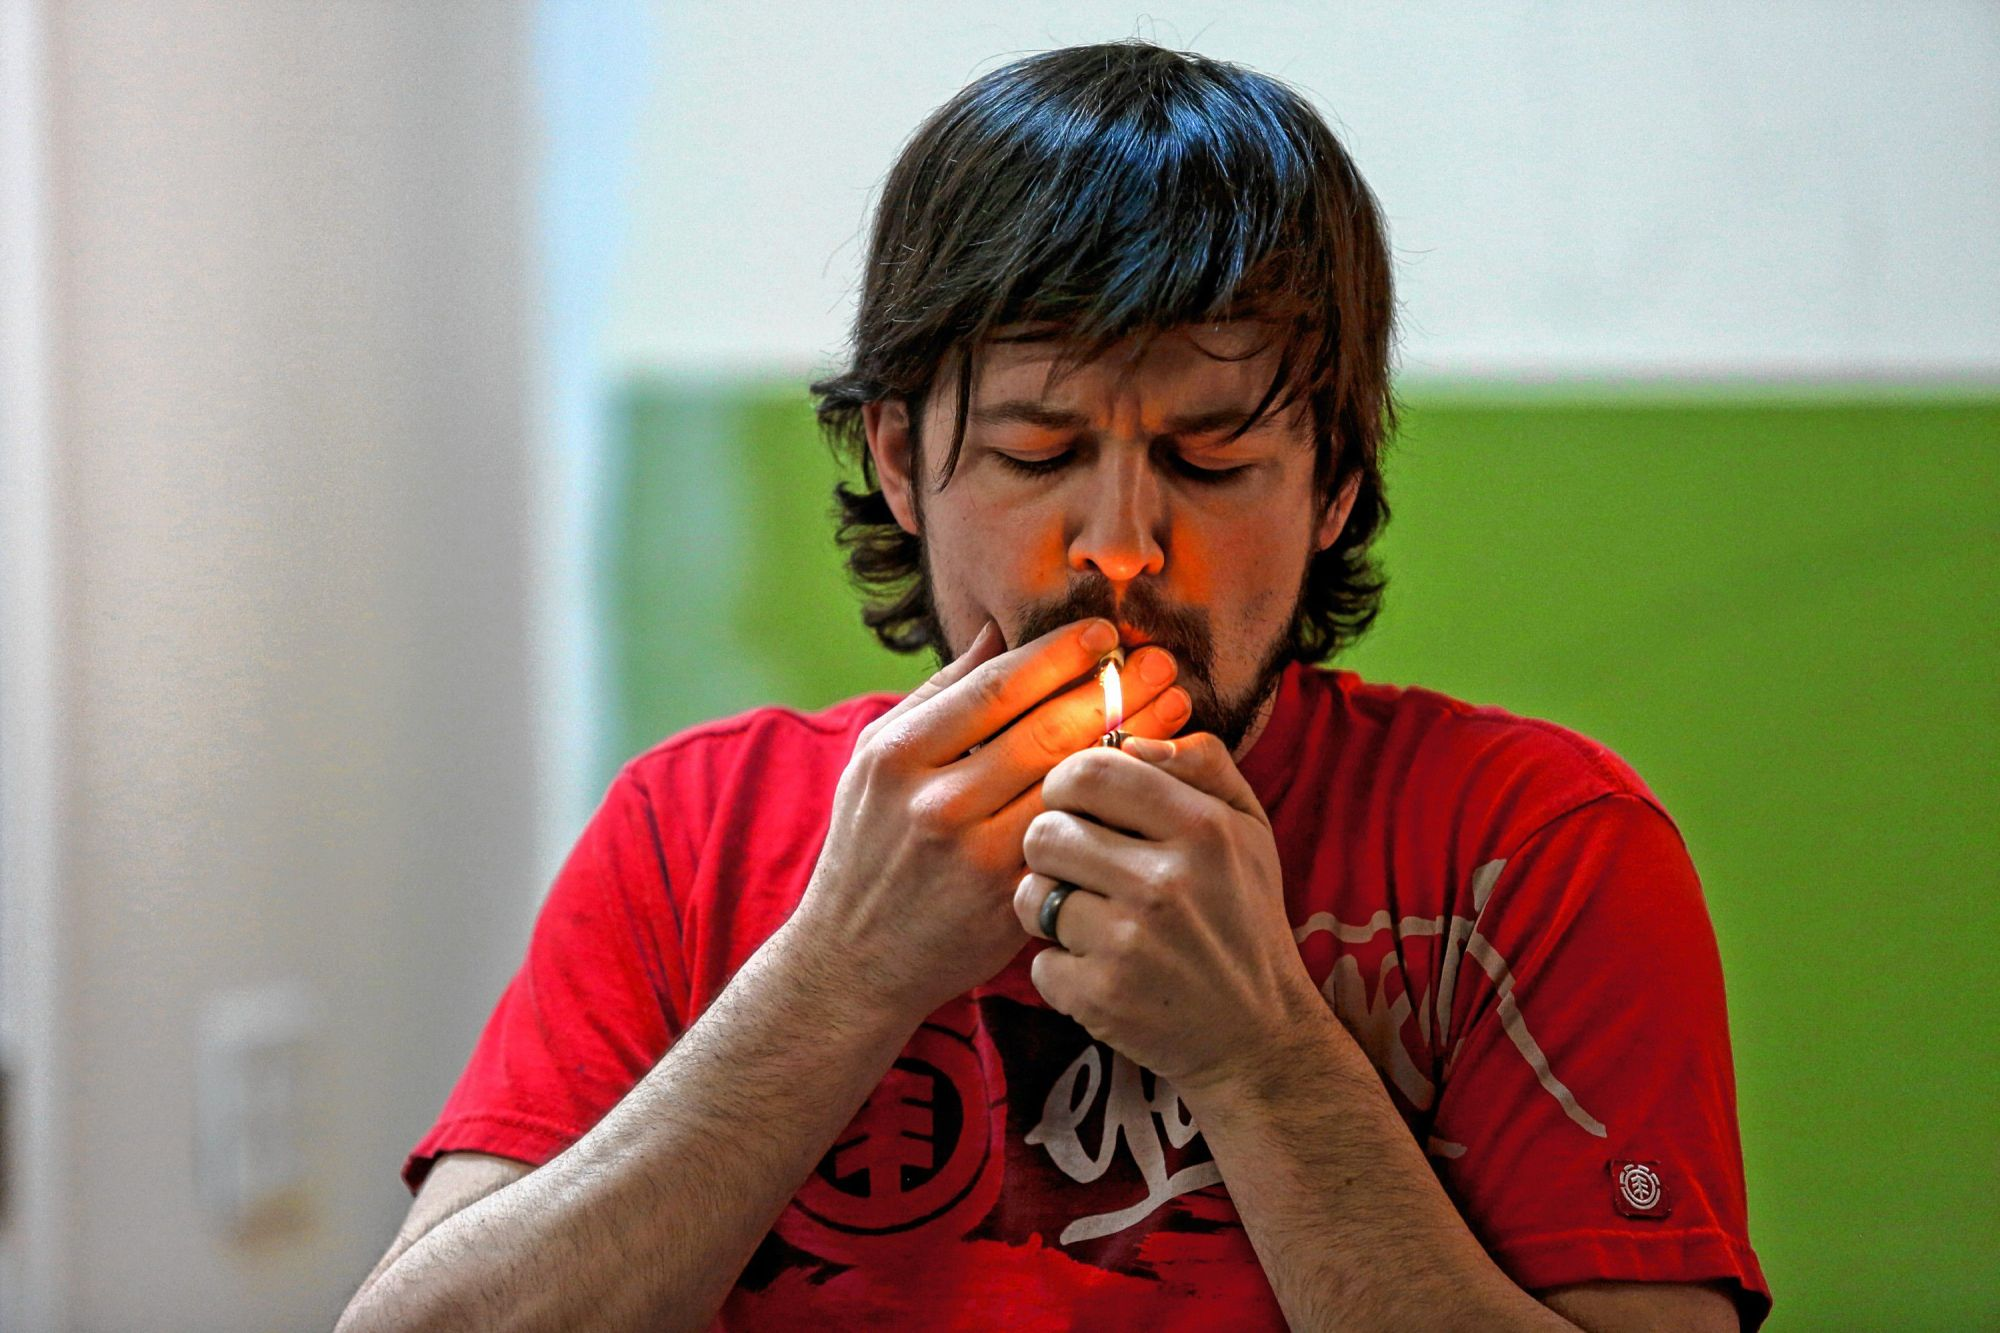 hight resolution of kyle young of easthampton front smokes cannabis april 7 2018 during chronic trips inhale exhale yoga at ora care in springfield